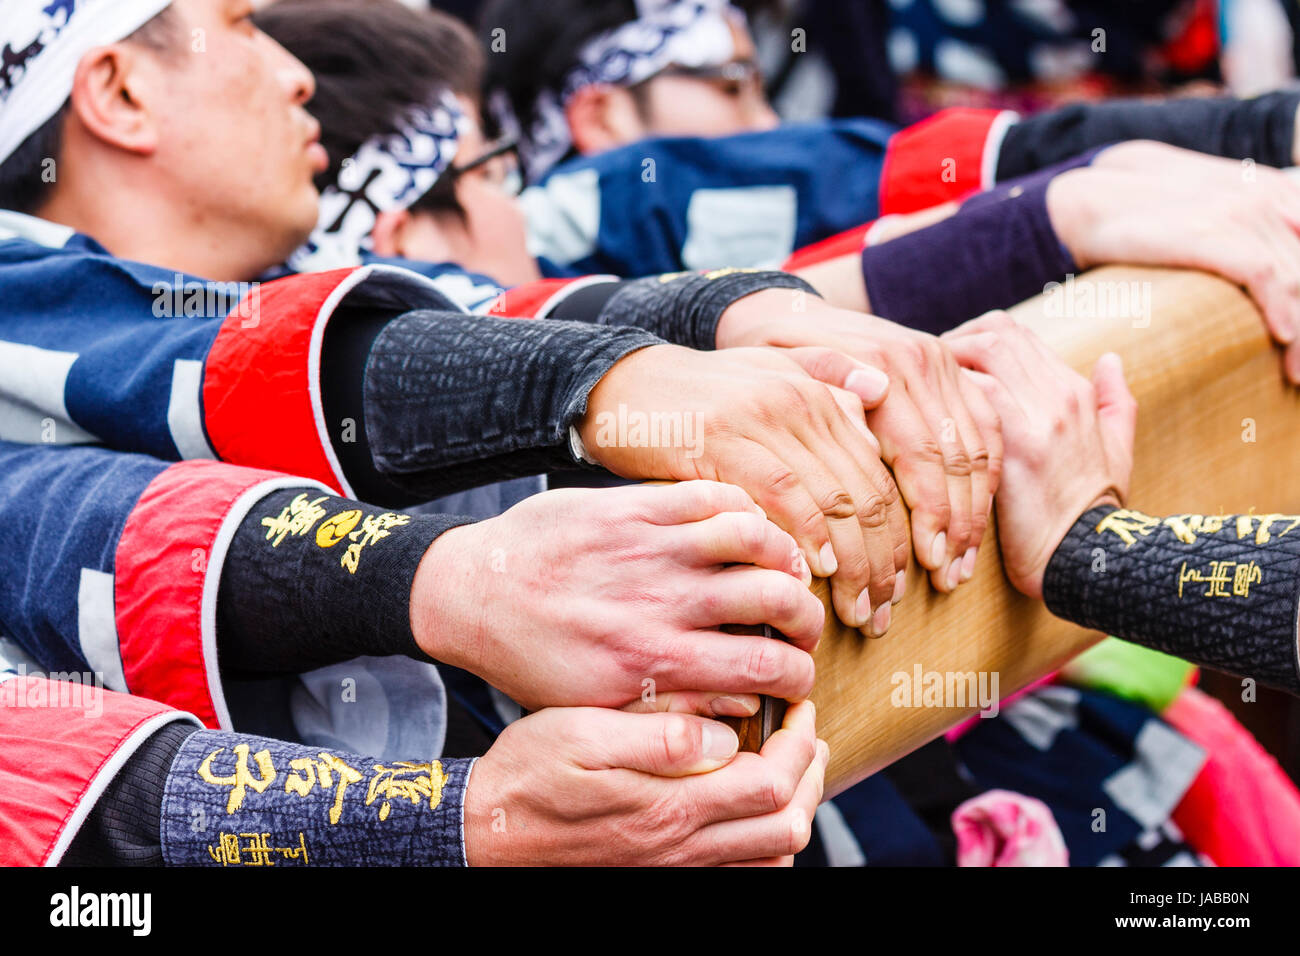 Close up of hands gripping wooden beam, part of Dashi float, as men struggle to pull it in one direction. Inuyama - Stock Image